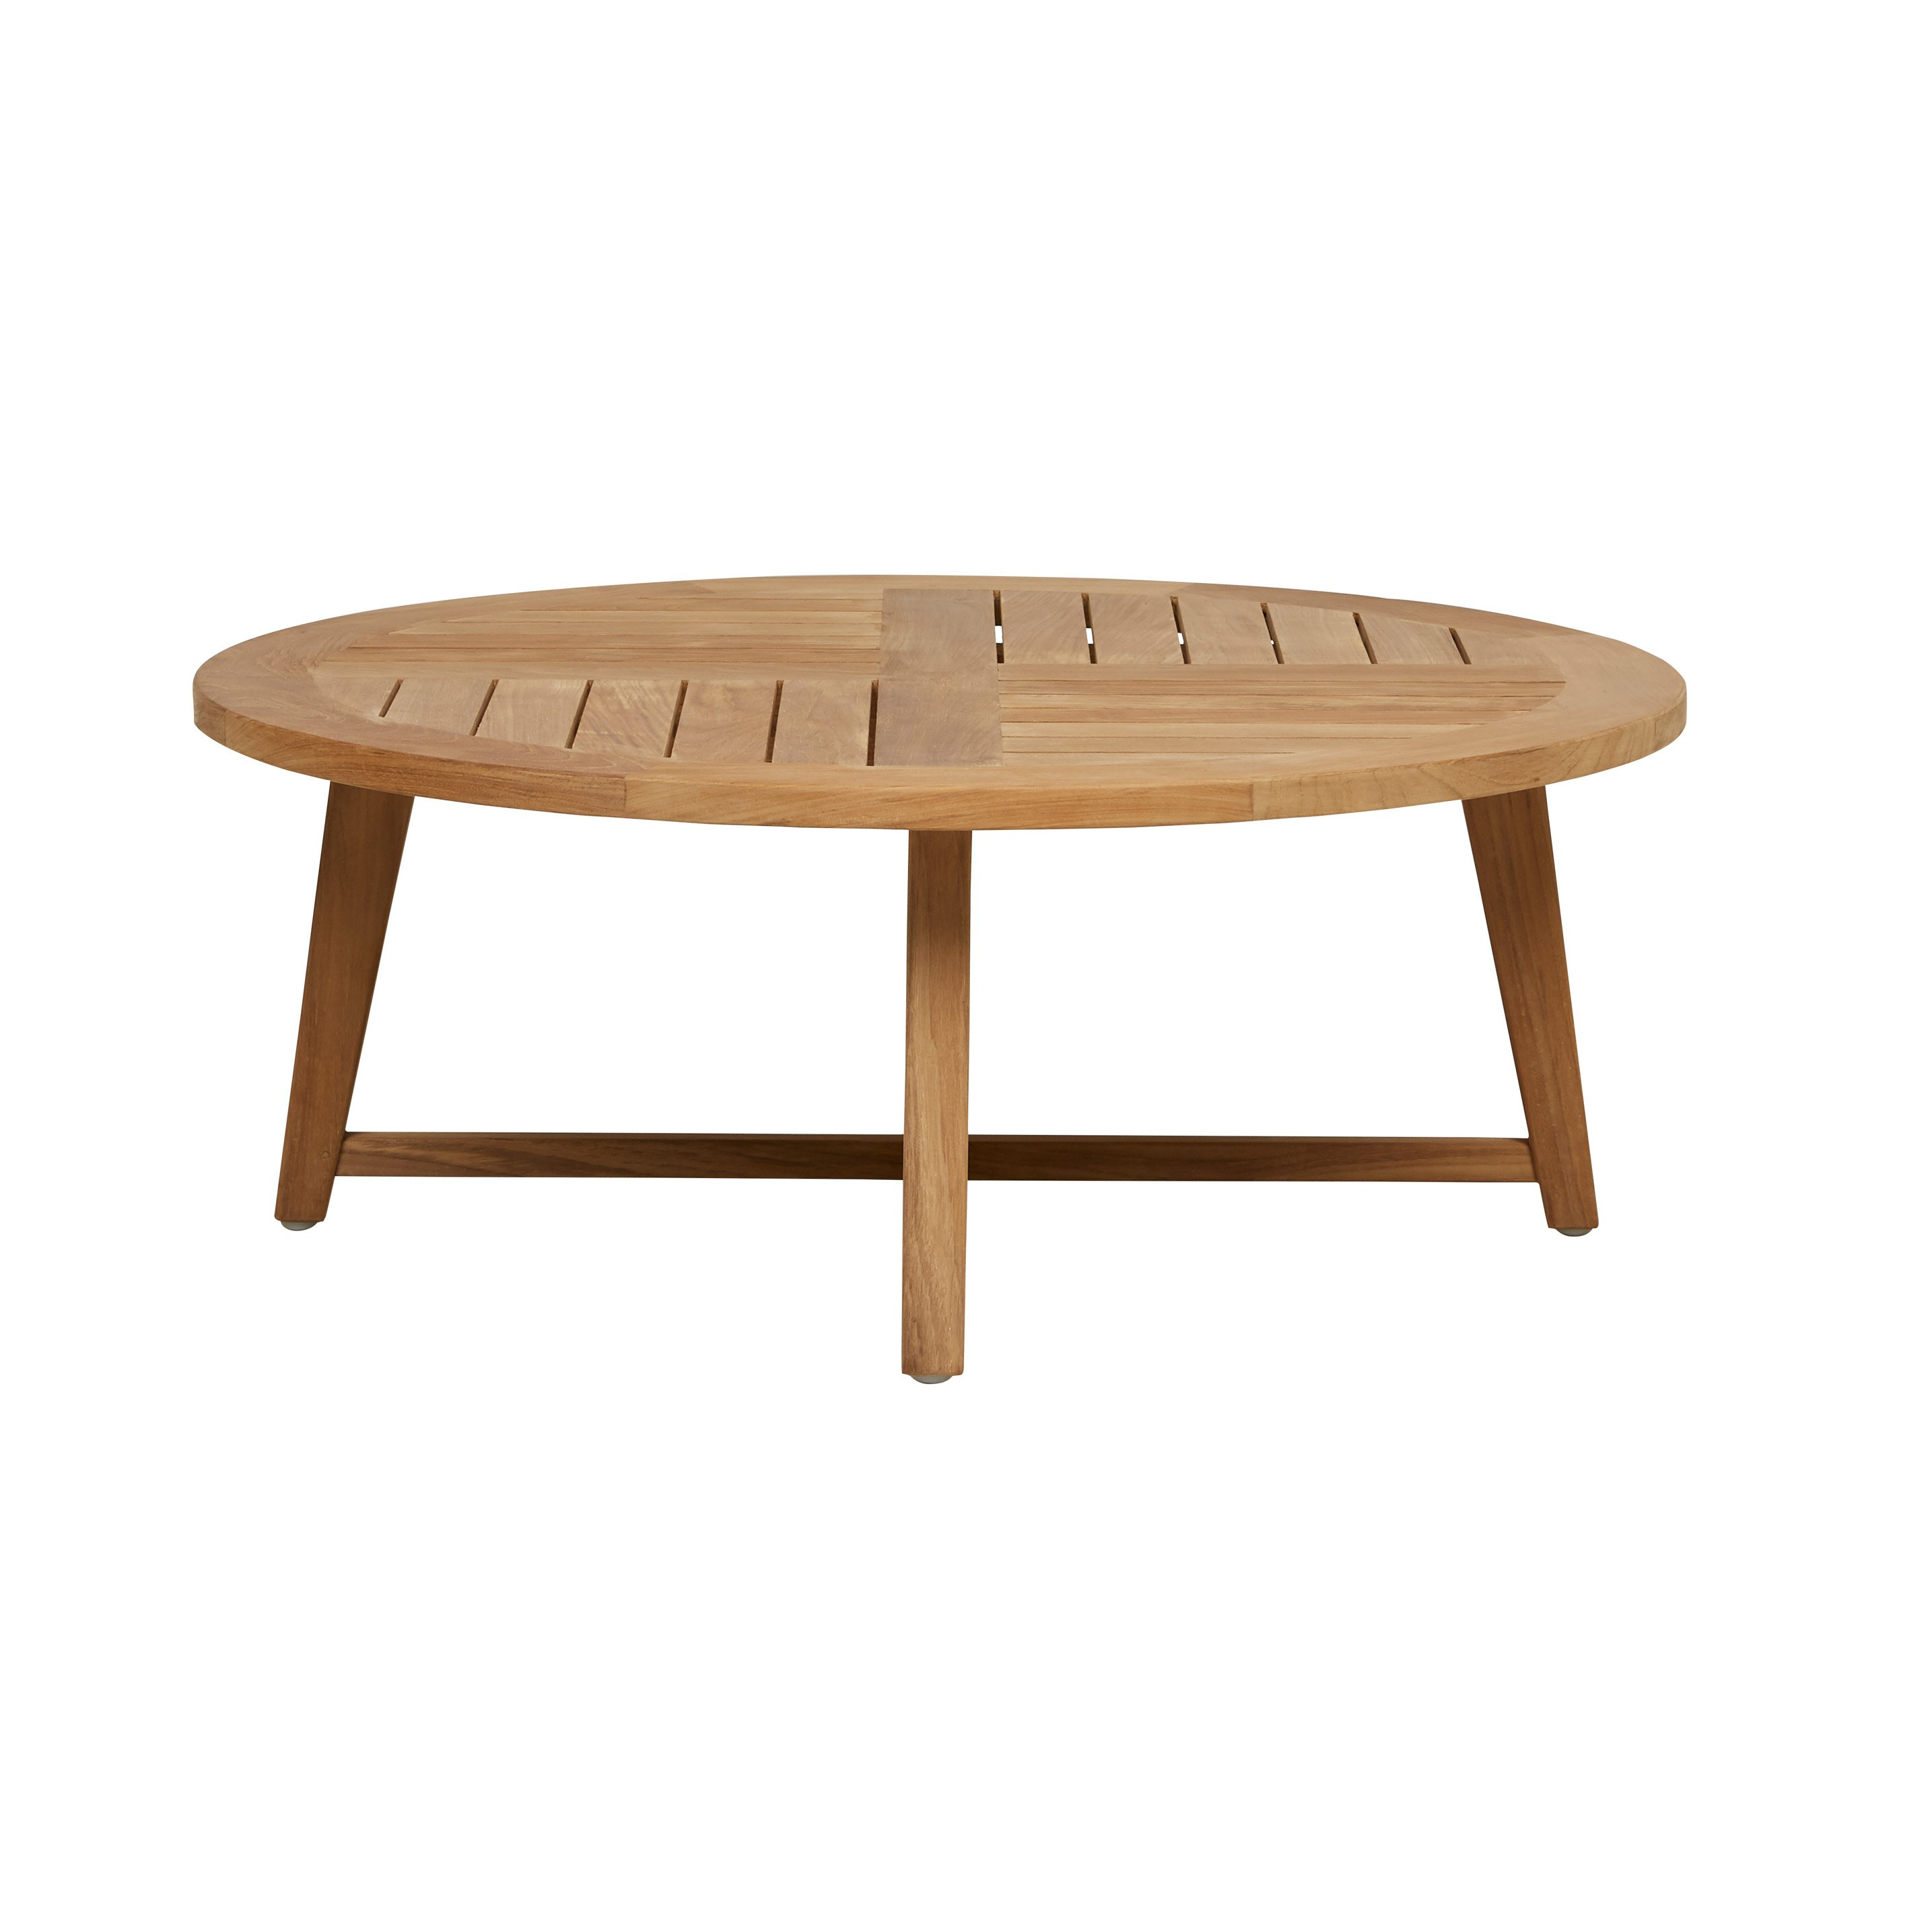 Furniture Hero-Images Coffee-Side-Tables-and-Trolleys sonoma-slat-round-coffee-table